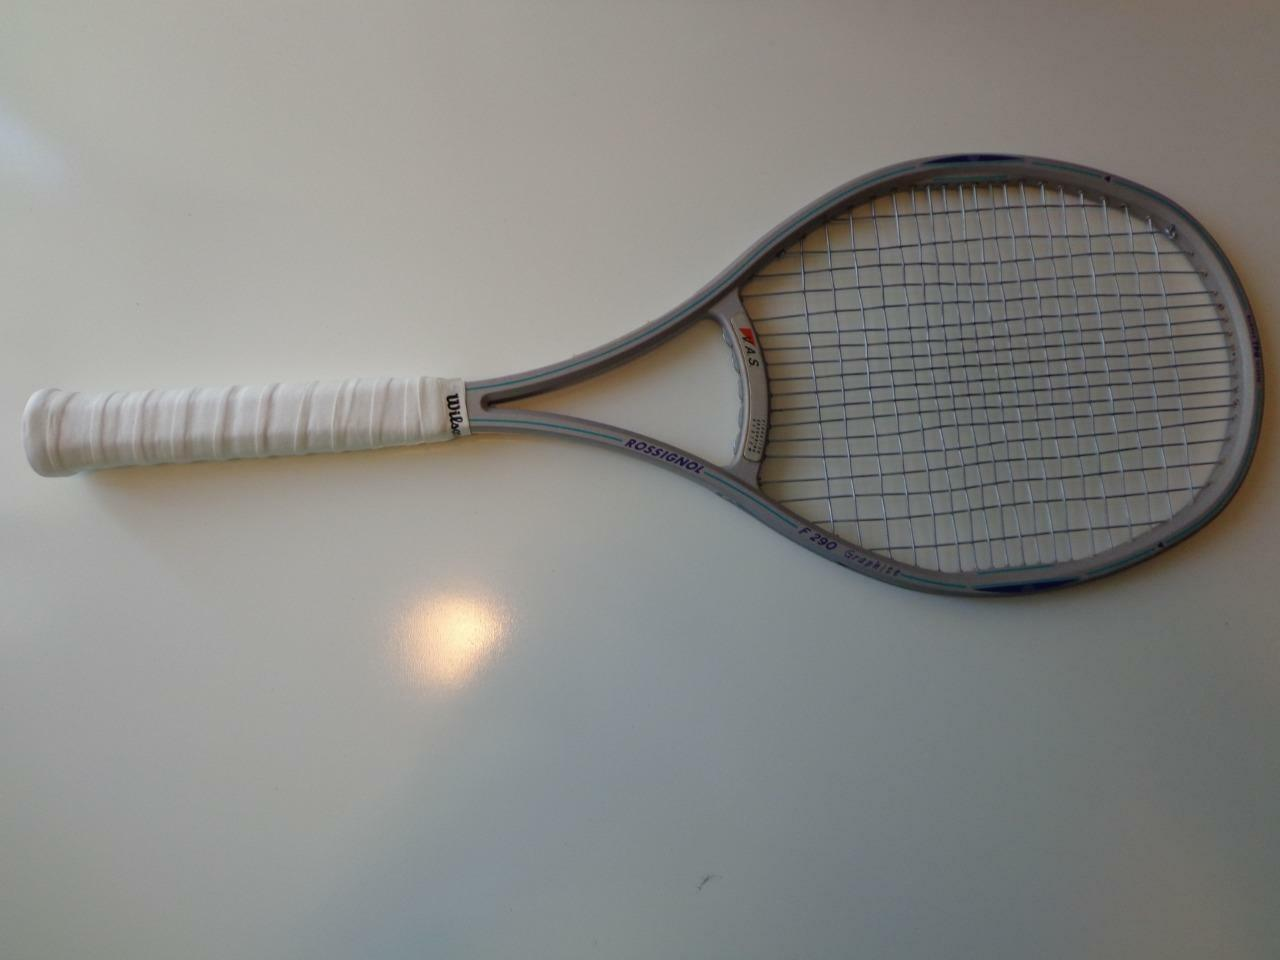 Rossignol F290 Taille Moyenne Made in France 4 1 2 grip raquette de tennis